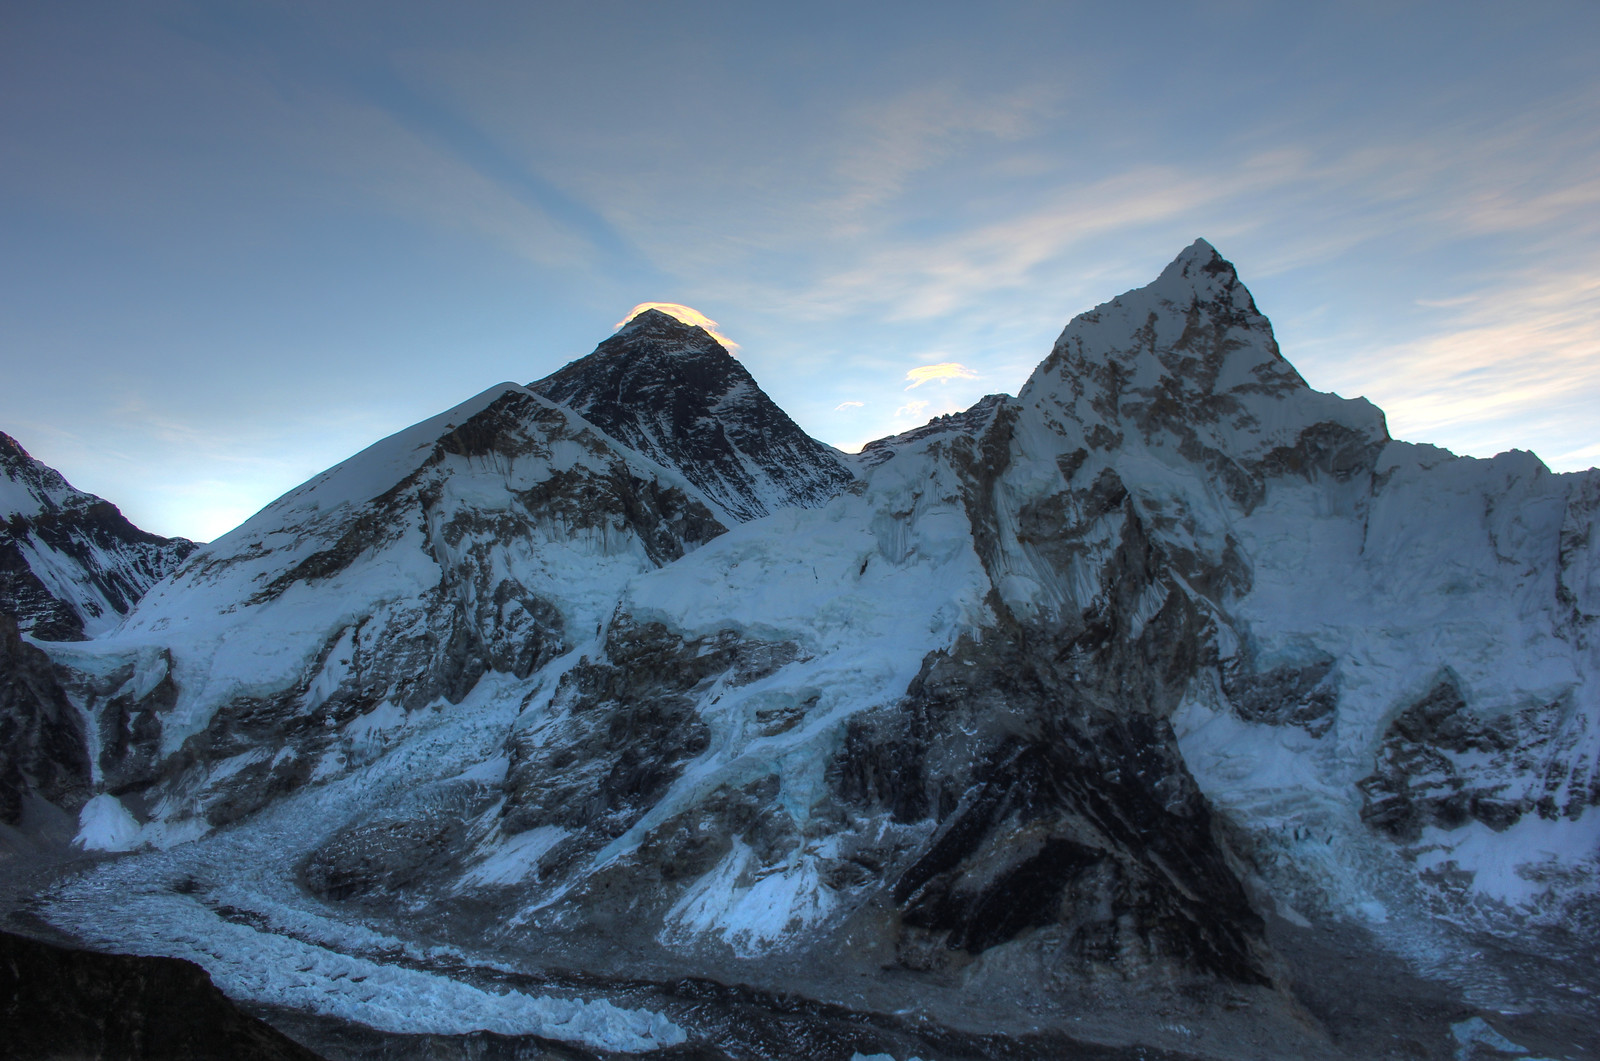 Everest, Nupste and Base Camp View from Kala Pattar